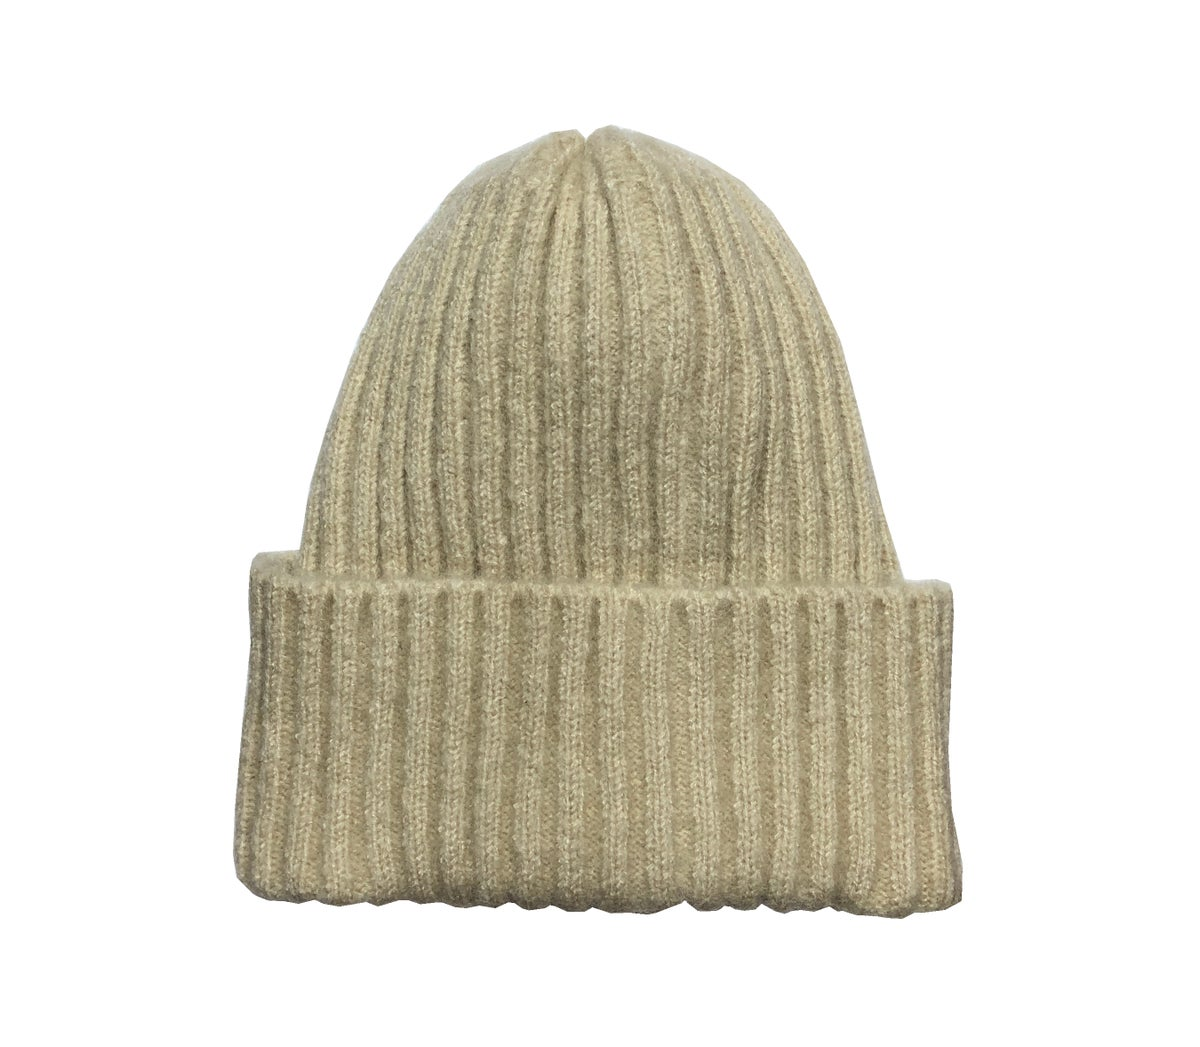 Image of Soft Fisherman's Beanie/ Watch Cap. Off-White.